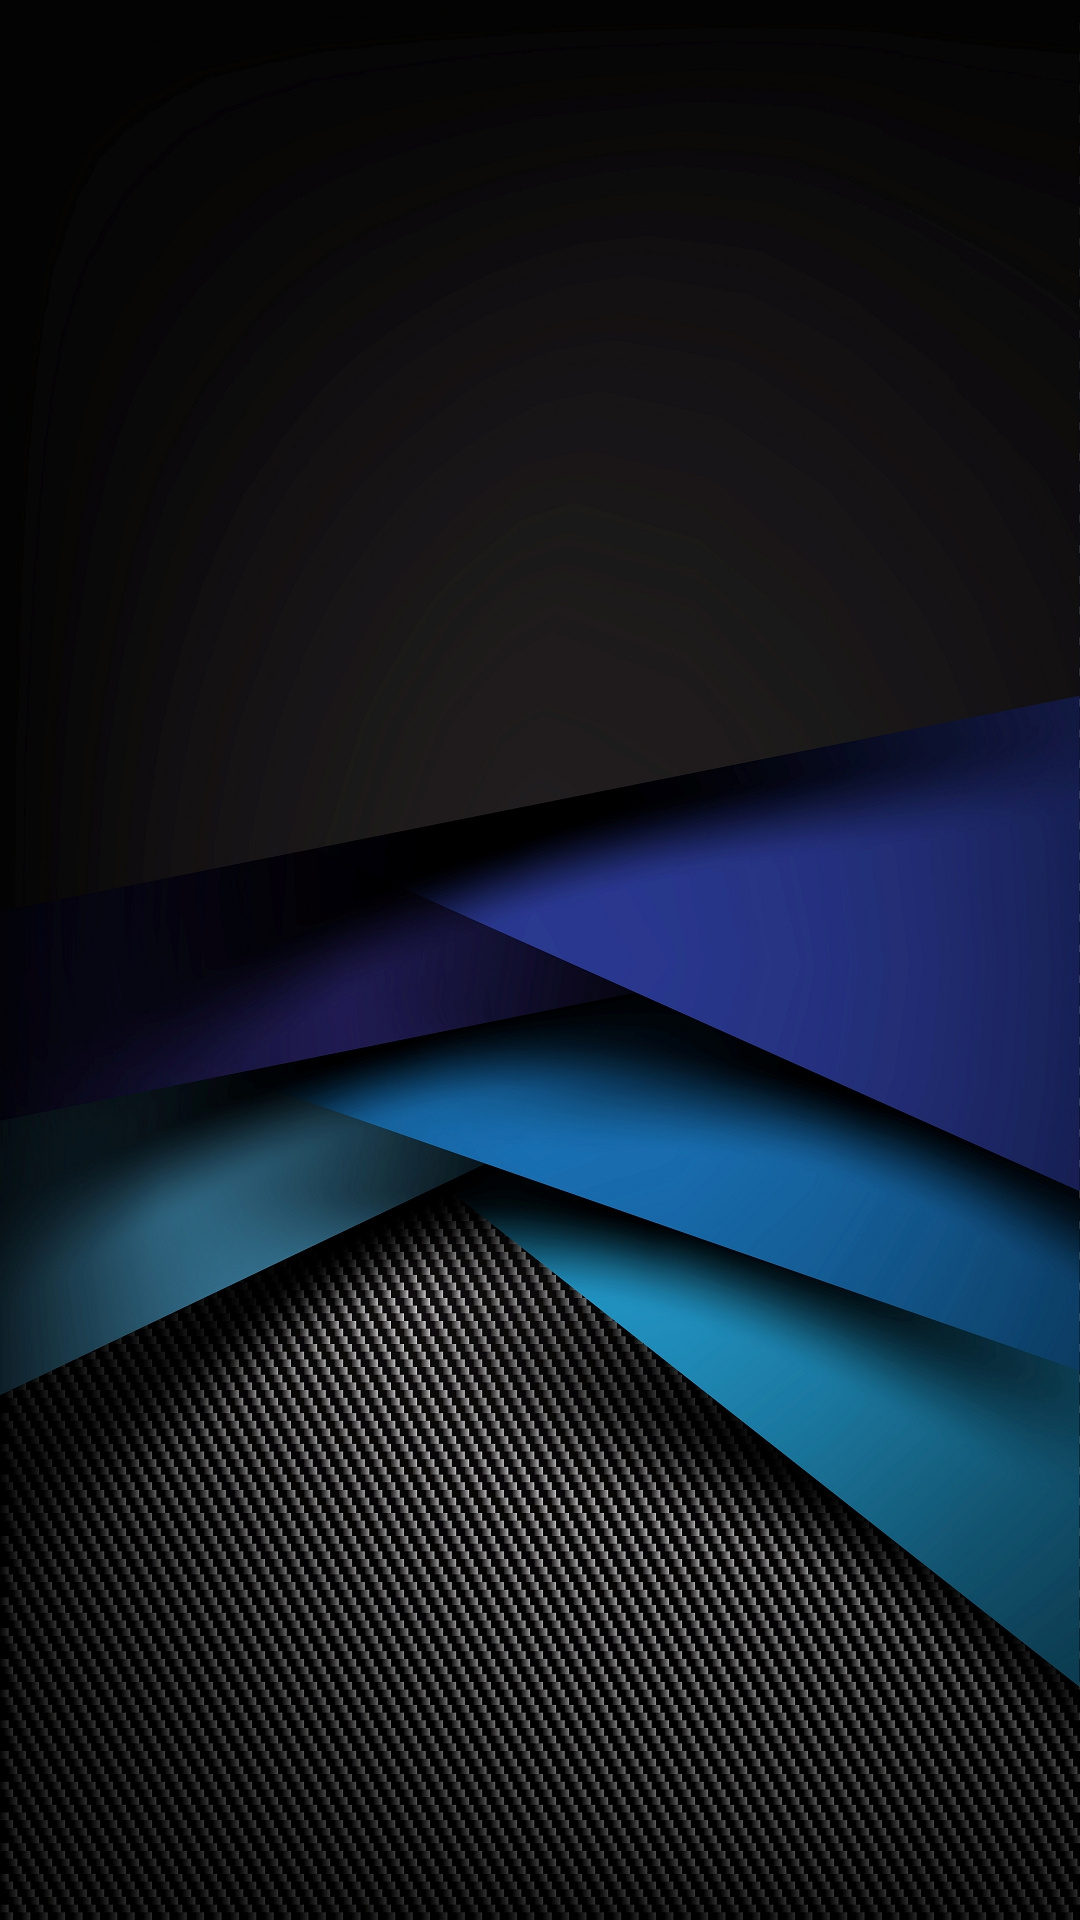 Abstract Design Pattern Shape HD Mobile Wallpaper 127   Vactual Papers 1080x1920